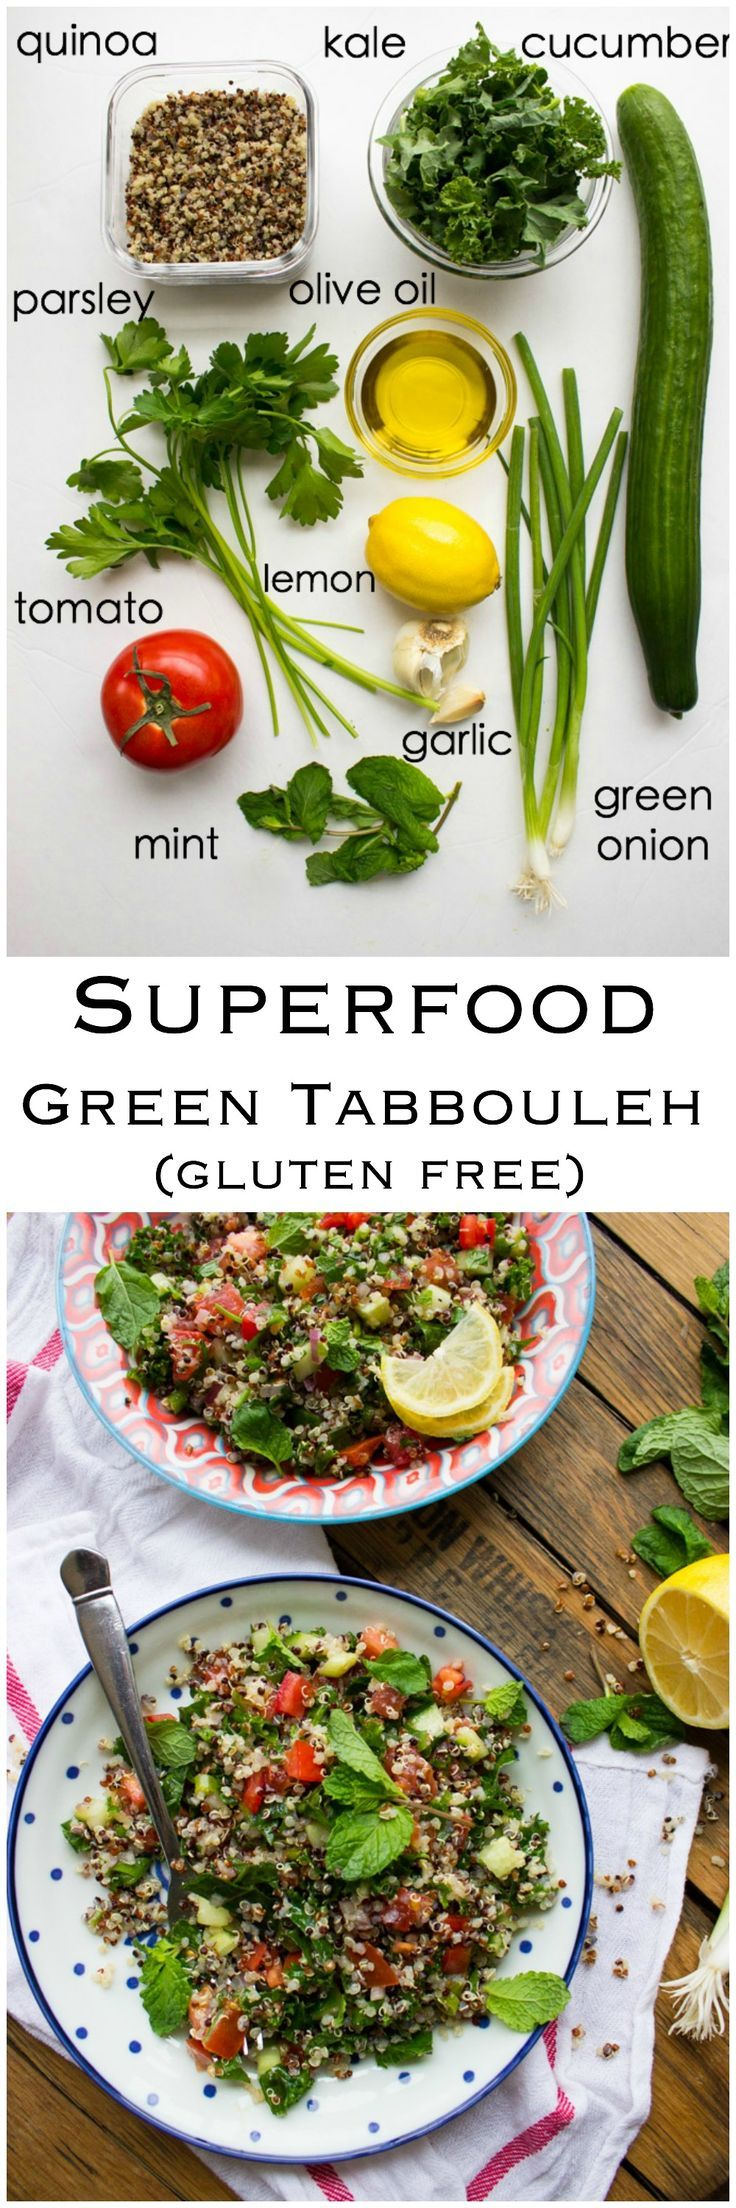 Superfood Green Tabbouleh - this gluten free salad made with superfood quinoa and kale. Takes minutes to make. Top it with chicken for healthy complete meal. SO GOOD! | http://littlebroken.com /littlebroken/